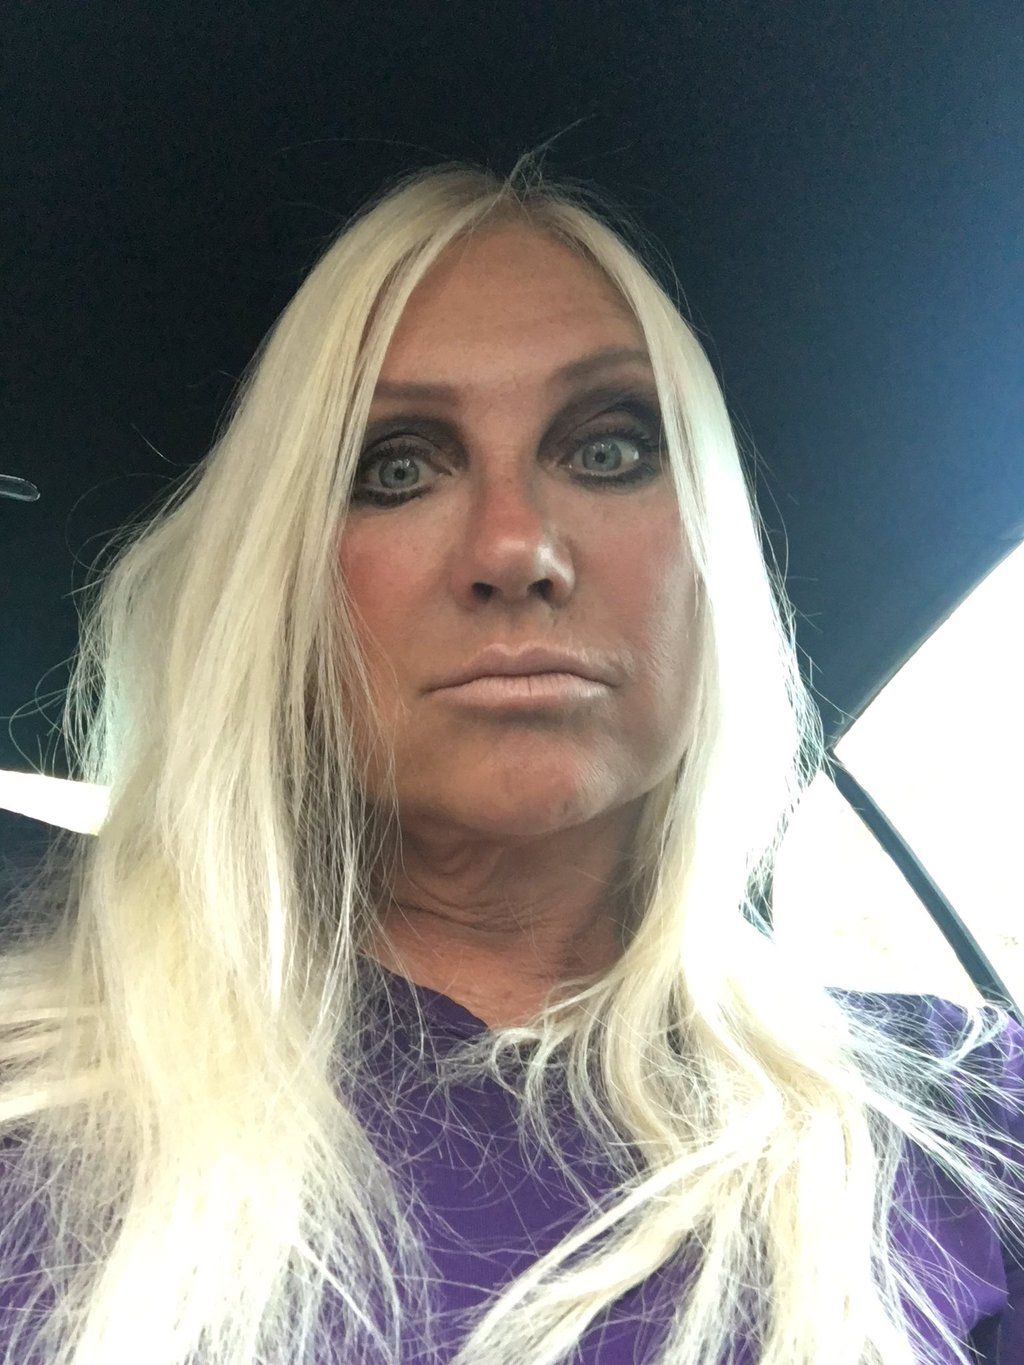 Photos Linda Hogan naked (94 foto and video), Pussy, Cleavage, Twitter, cameltoe 2015